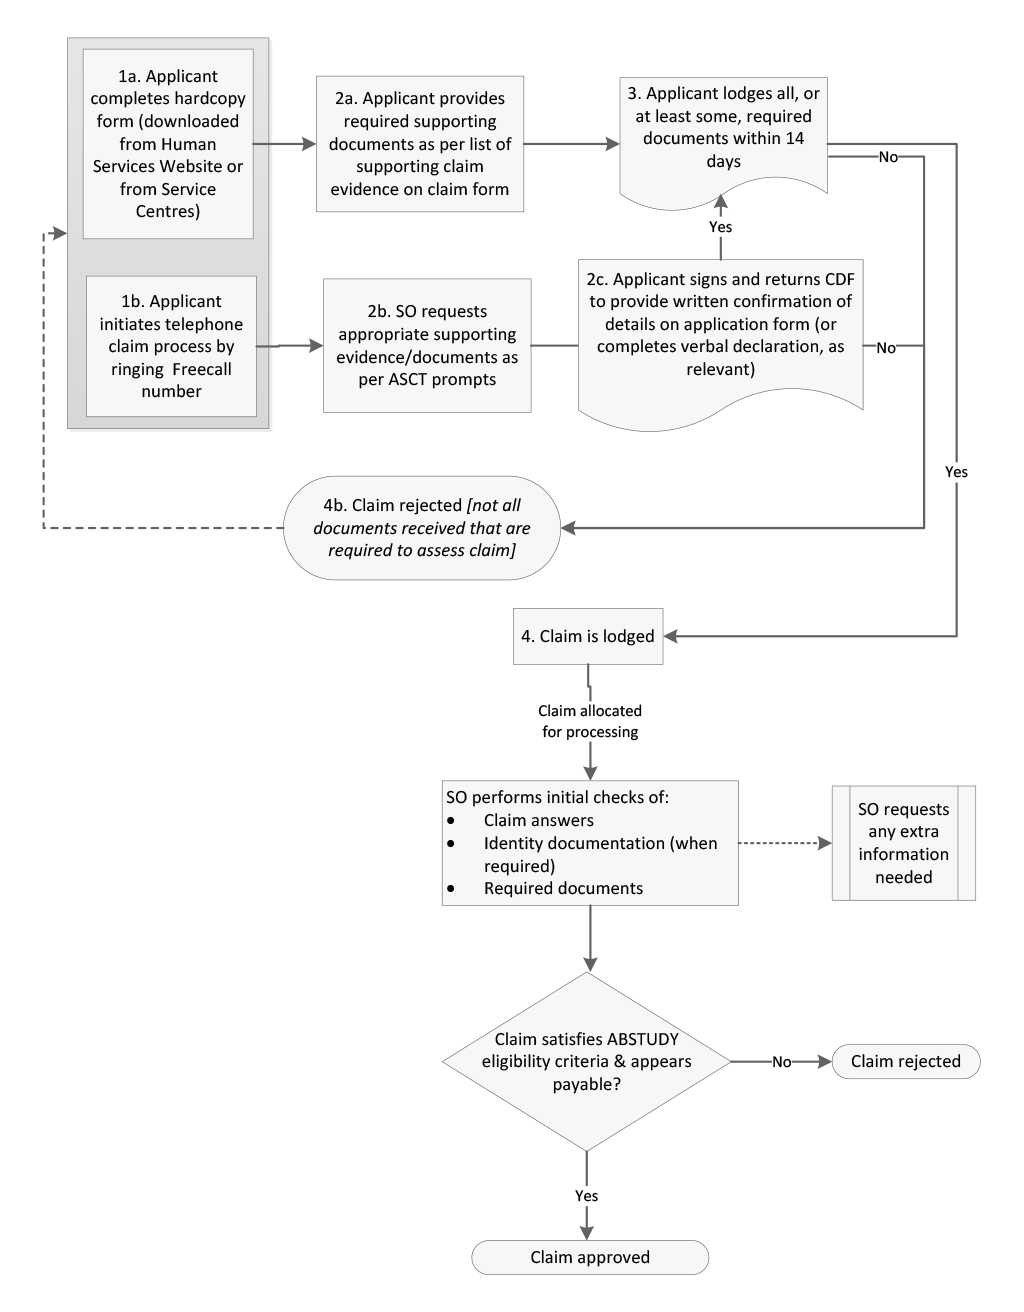 Flowchart for process for assessing and processing ABSTUDY claims